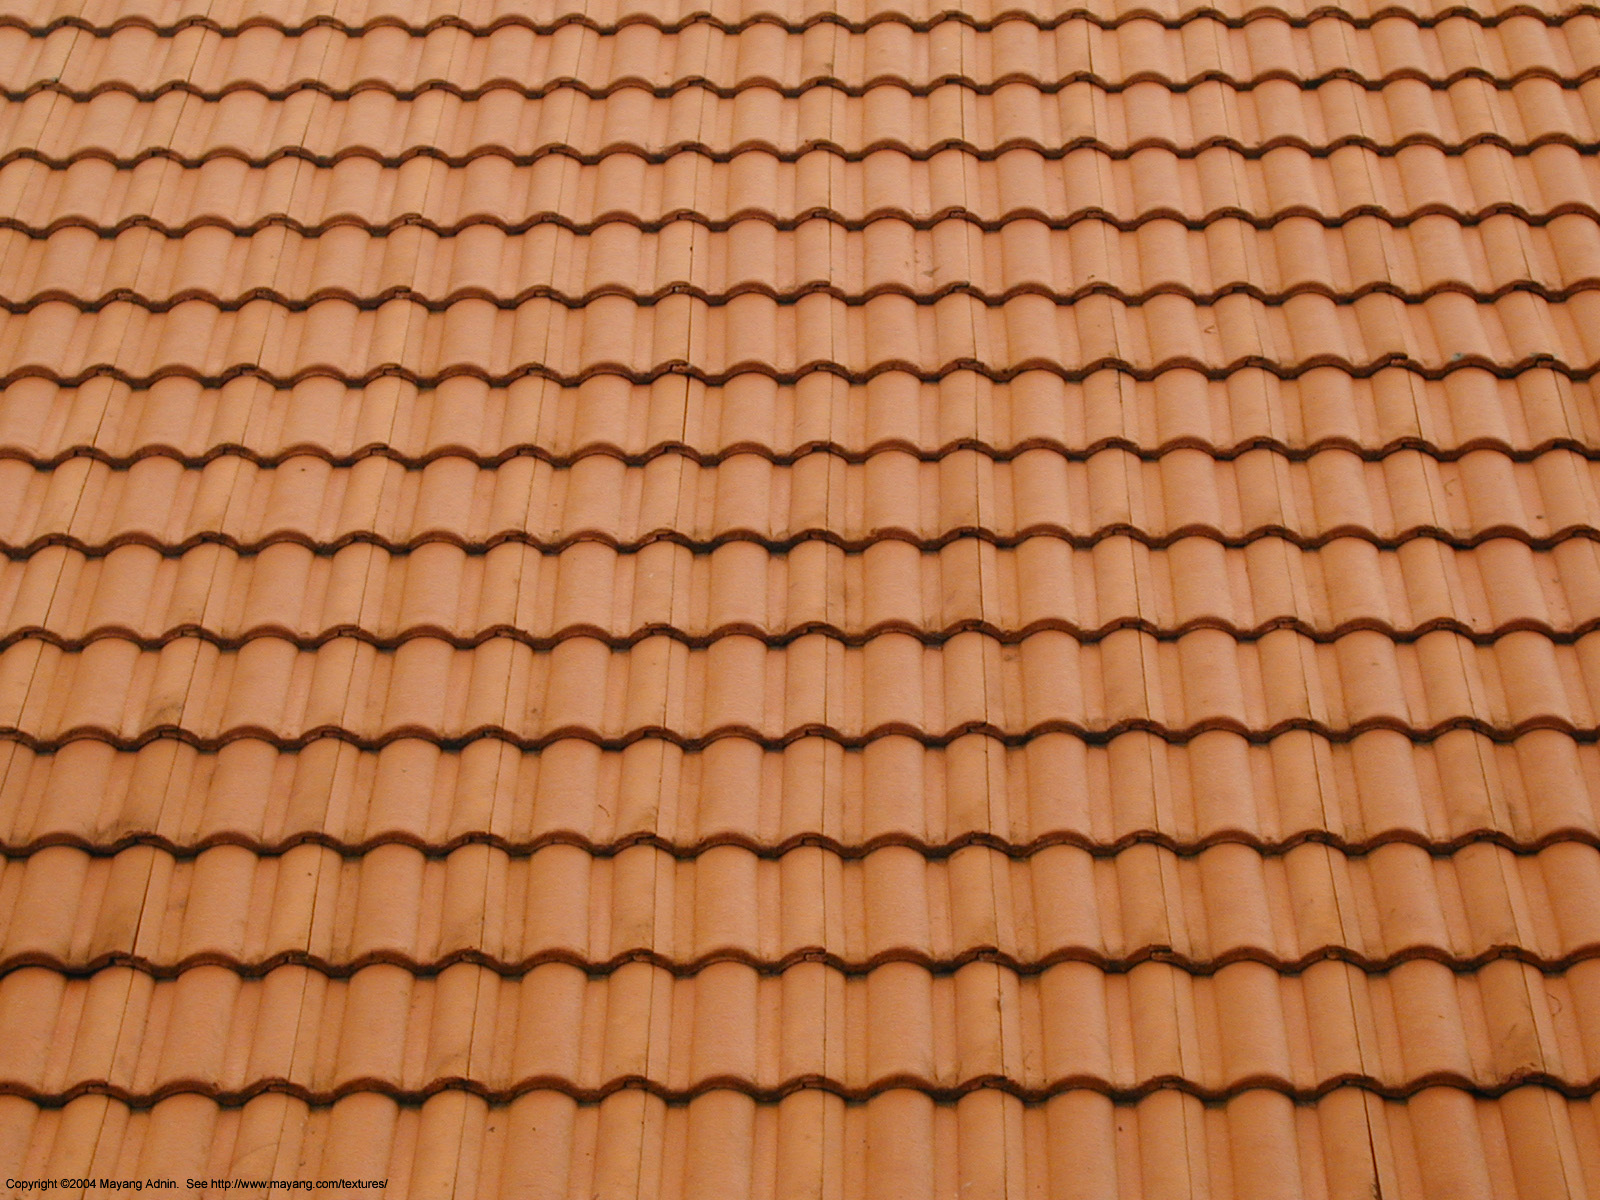 My home design roof tiles for Clay tile roofs